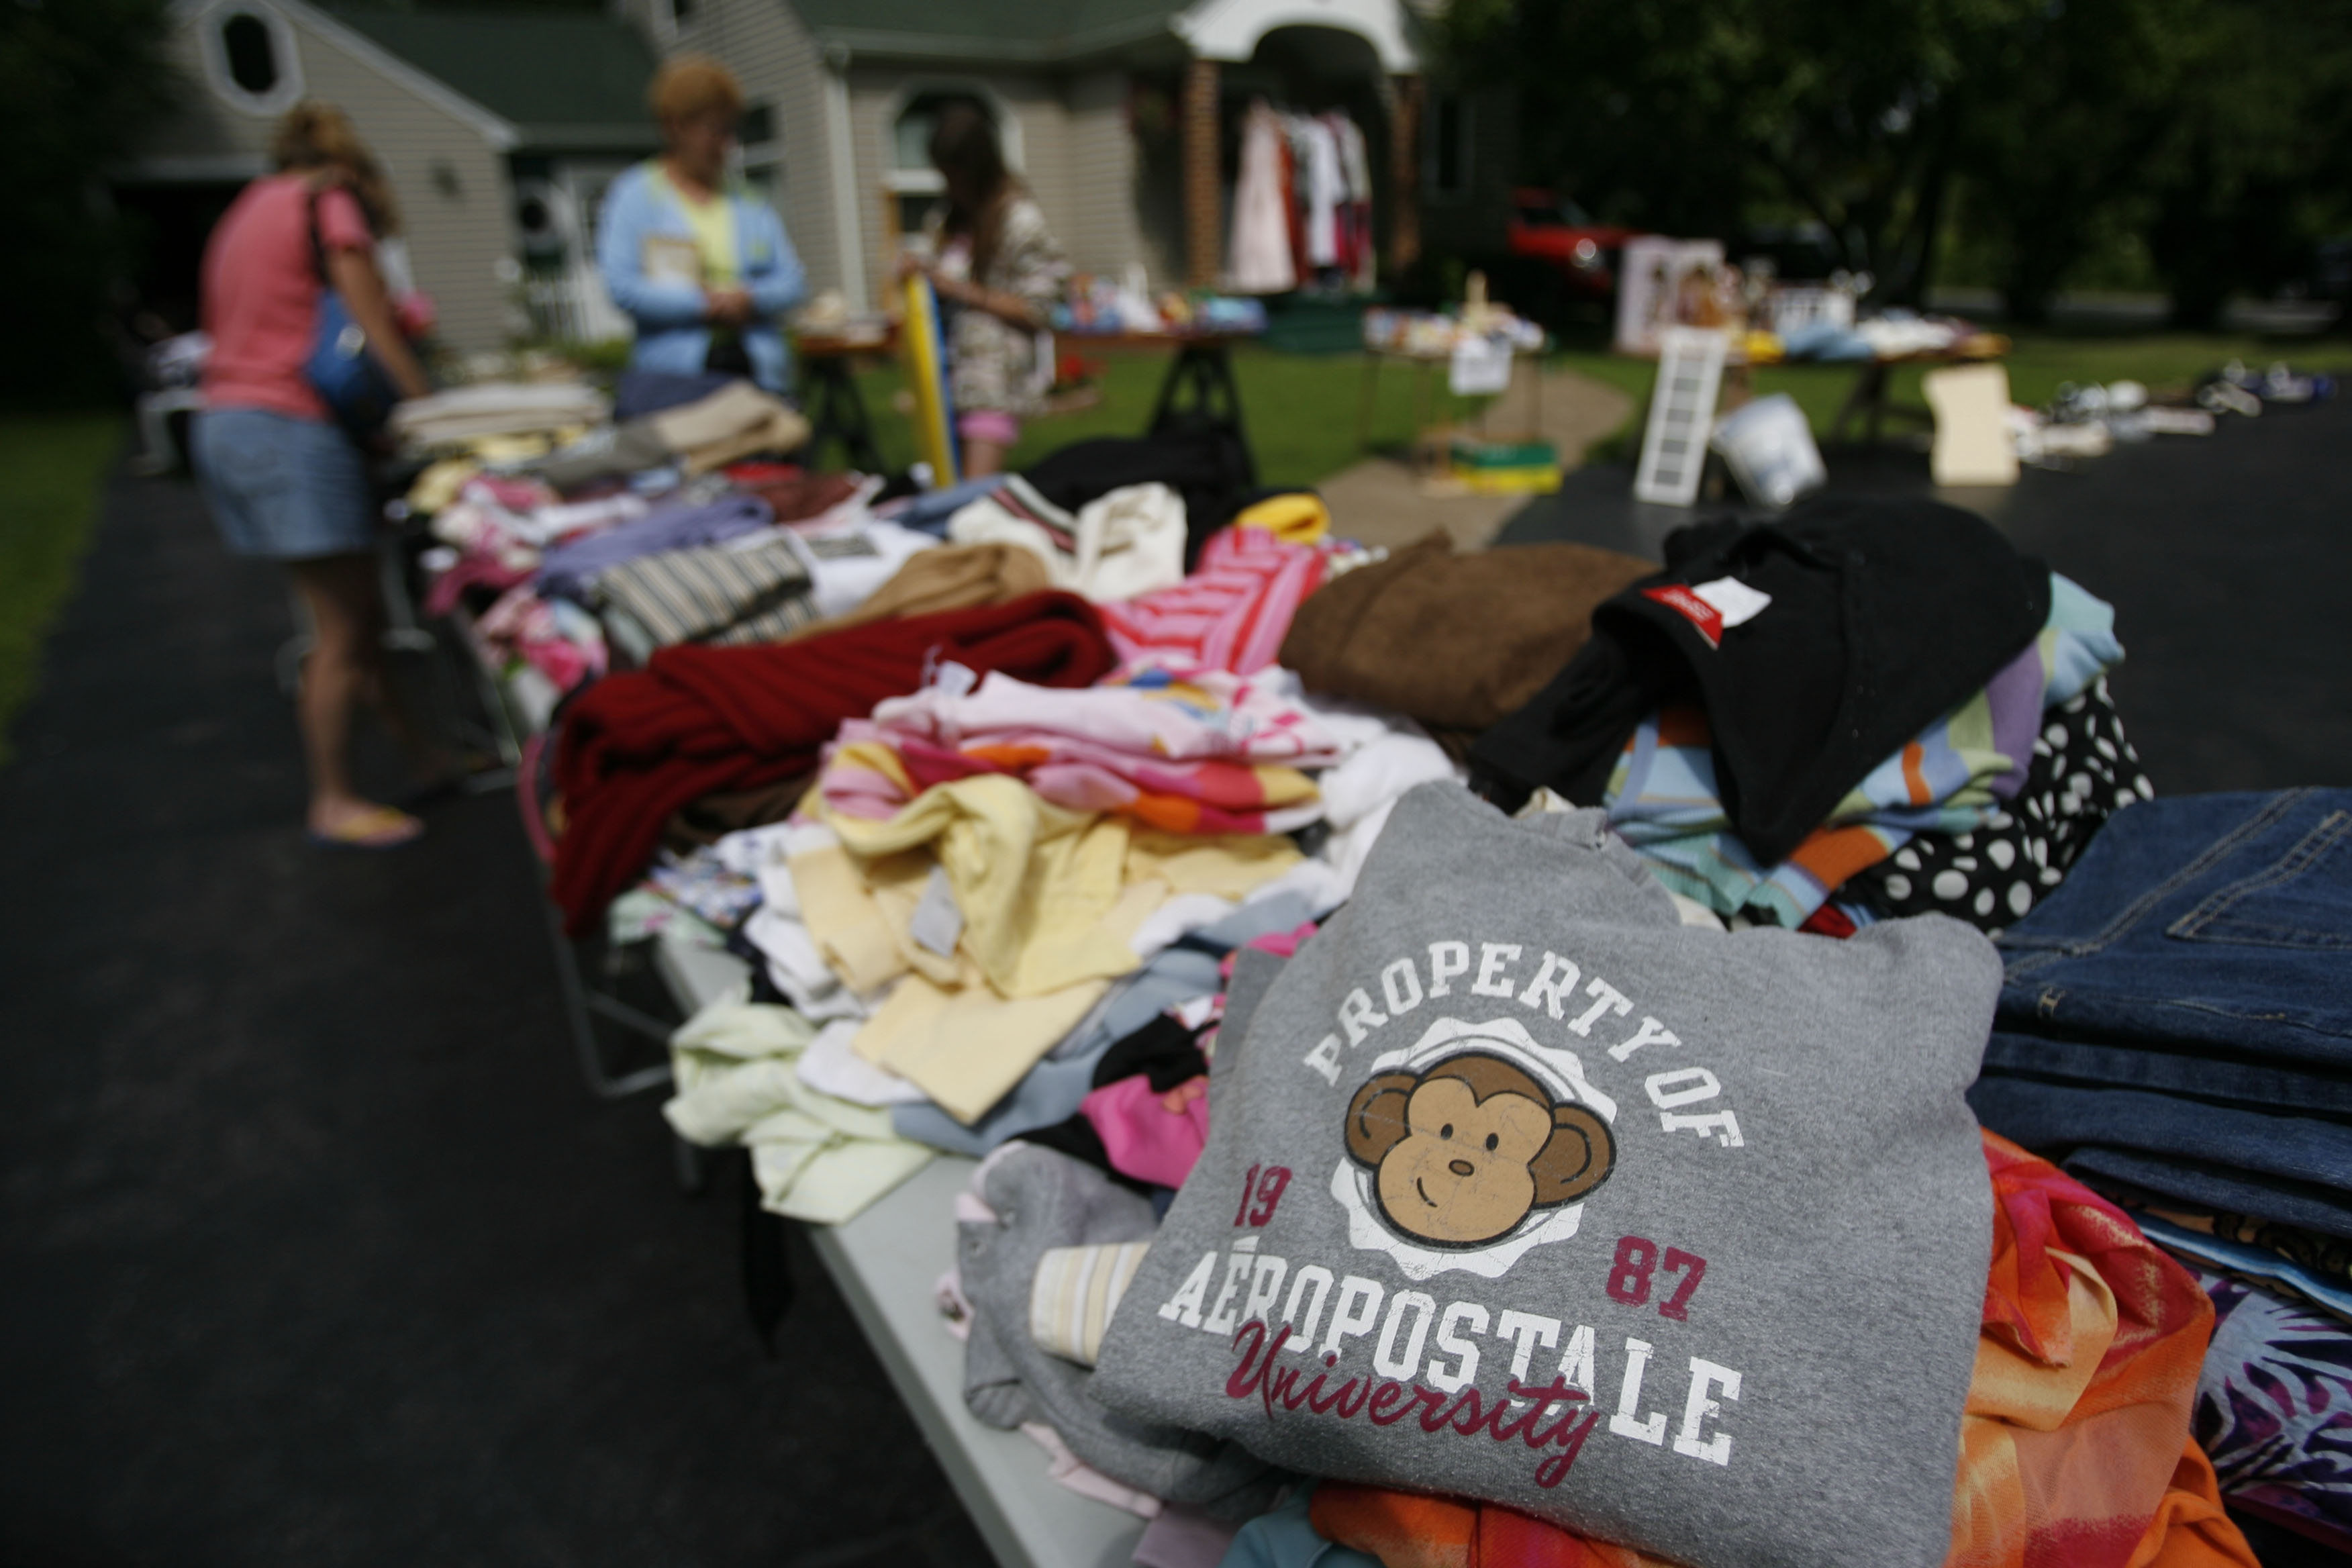 Articles of clothing for sale at a garage sale in Amherst on July 18th, 2009.  PHOTO BY CHARLES LEWIS